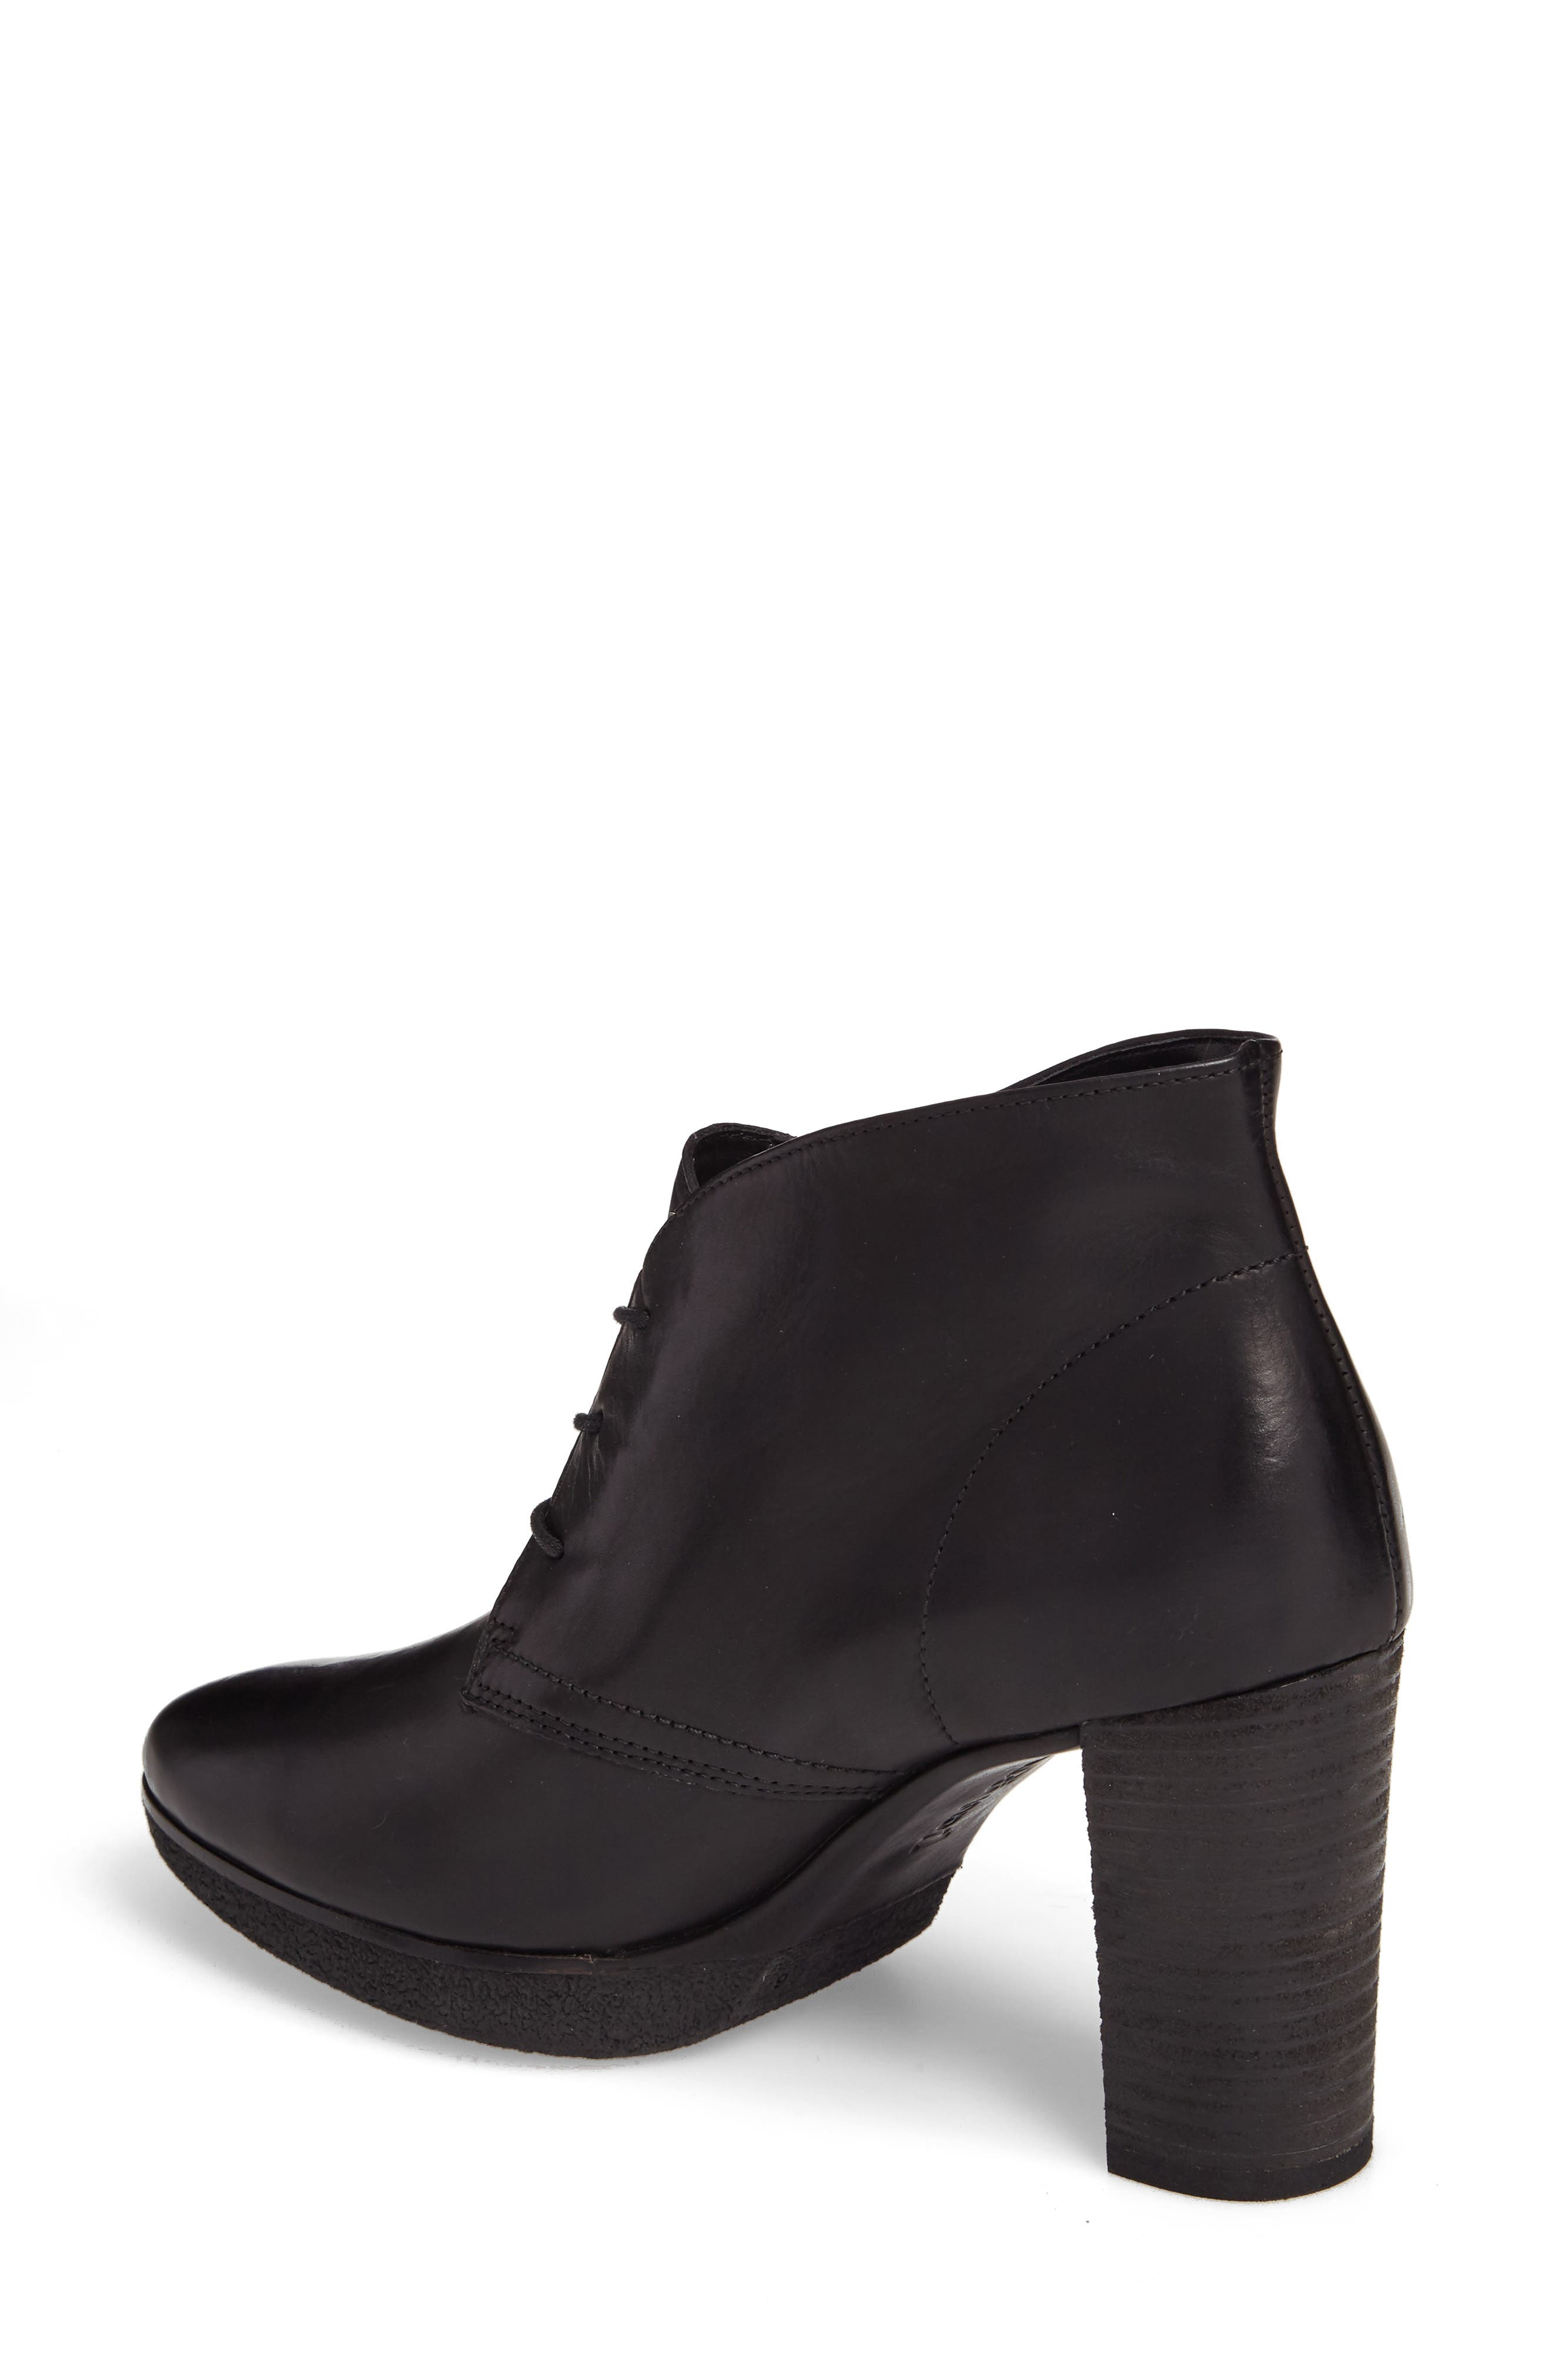 Ophelia Lace-Up Bootie,                             Alternate thumbnail 2, color,                             Black Leather